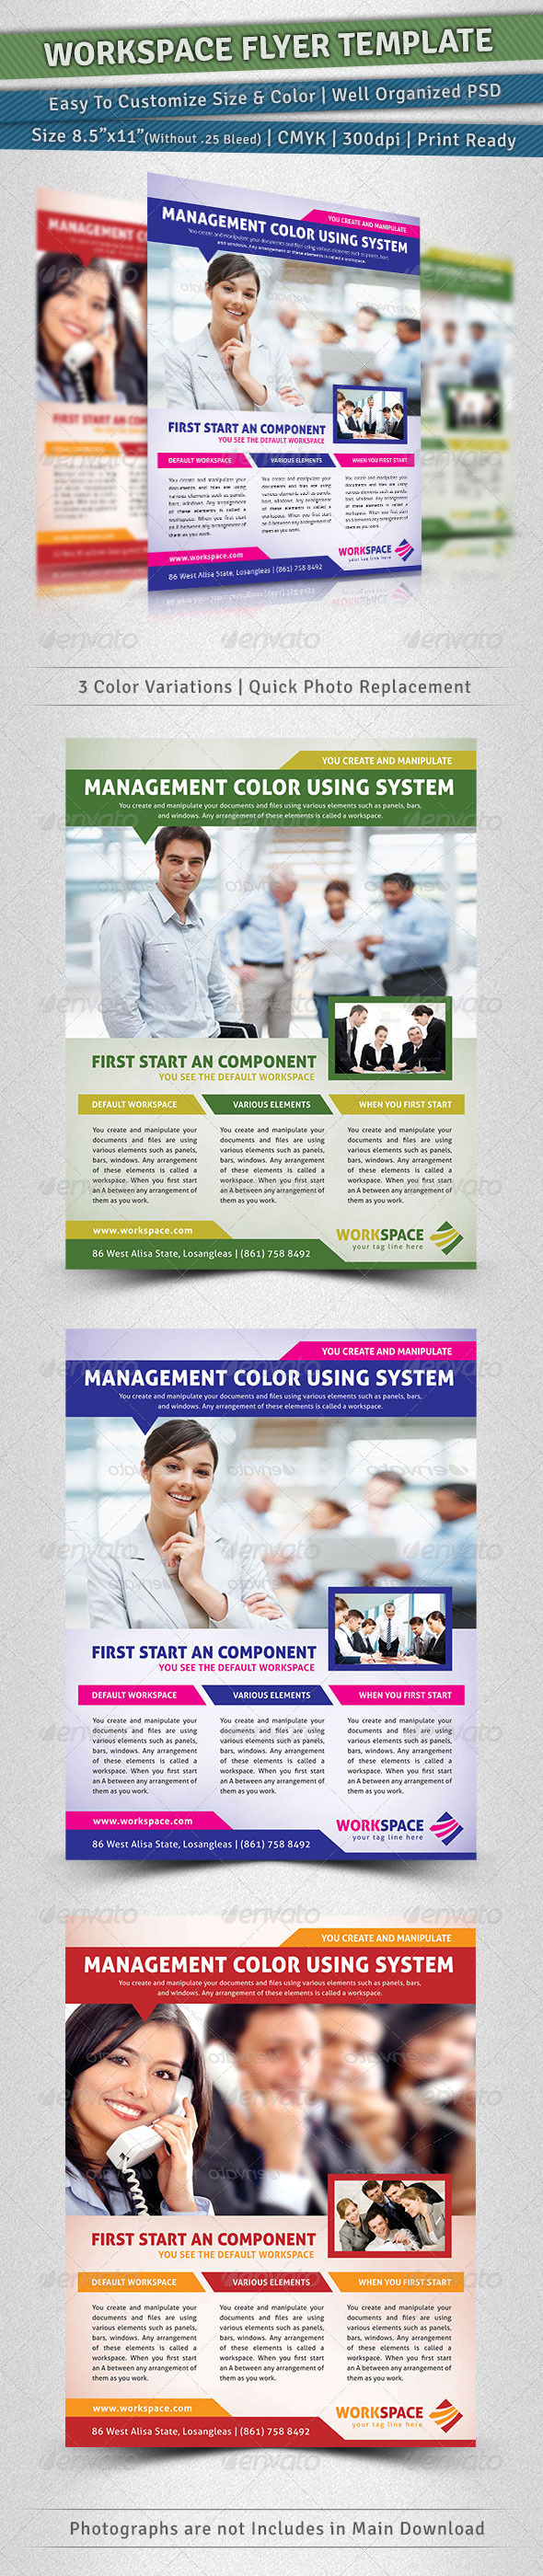 Workspace Flyer Template - Corporate Flyers